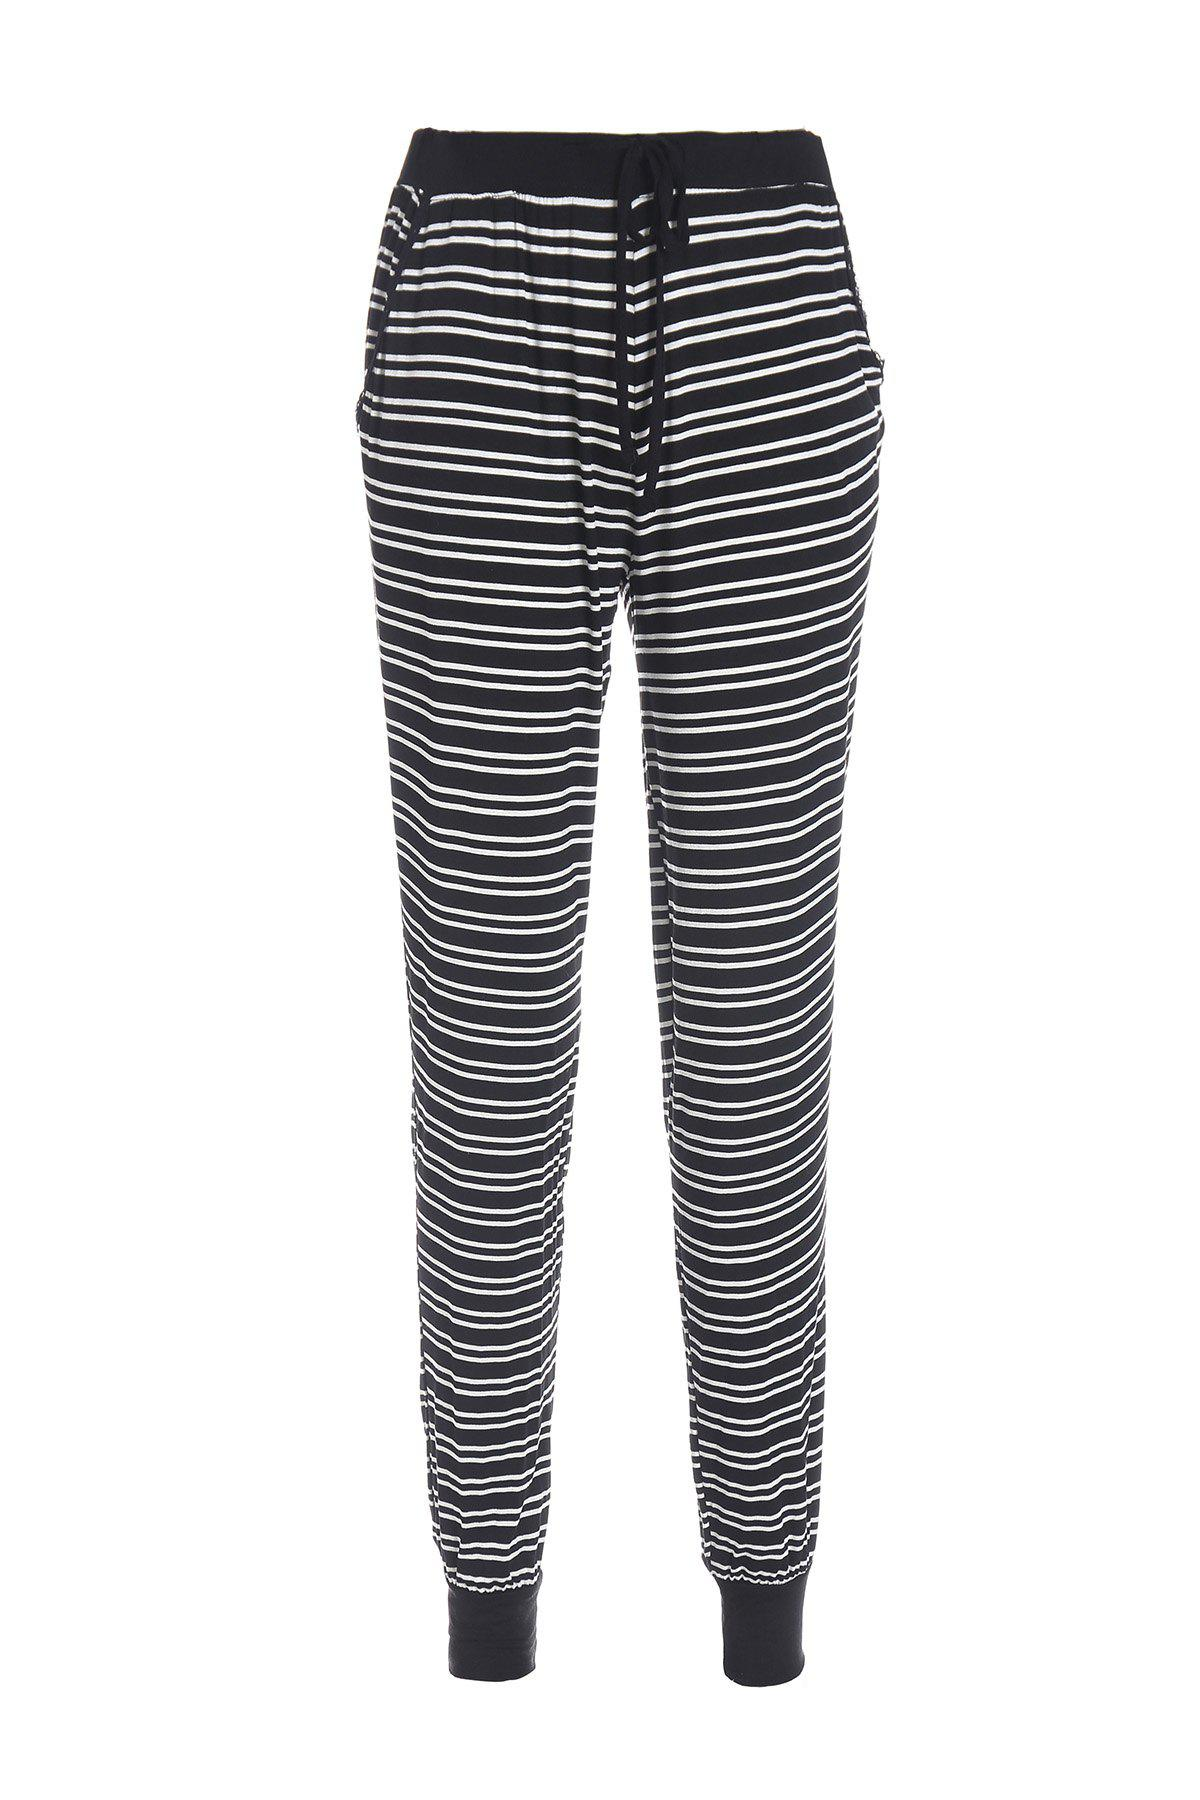 Casual Style Elastic Waist Black and White Stripe Pocket Pants For Women